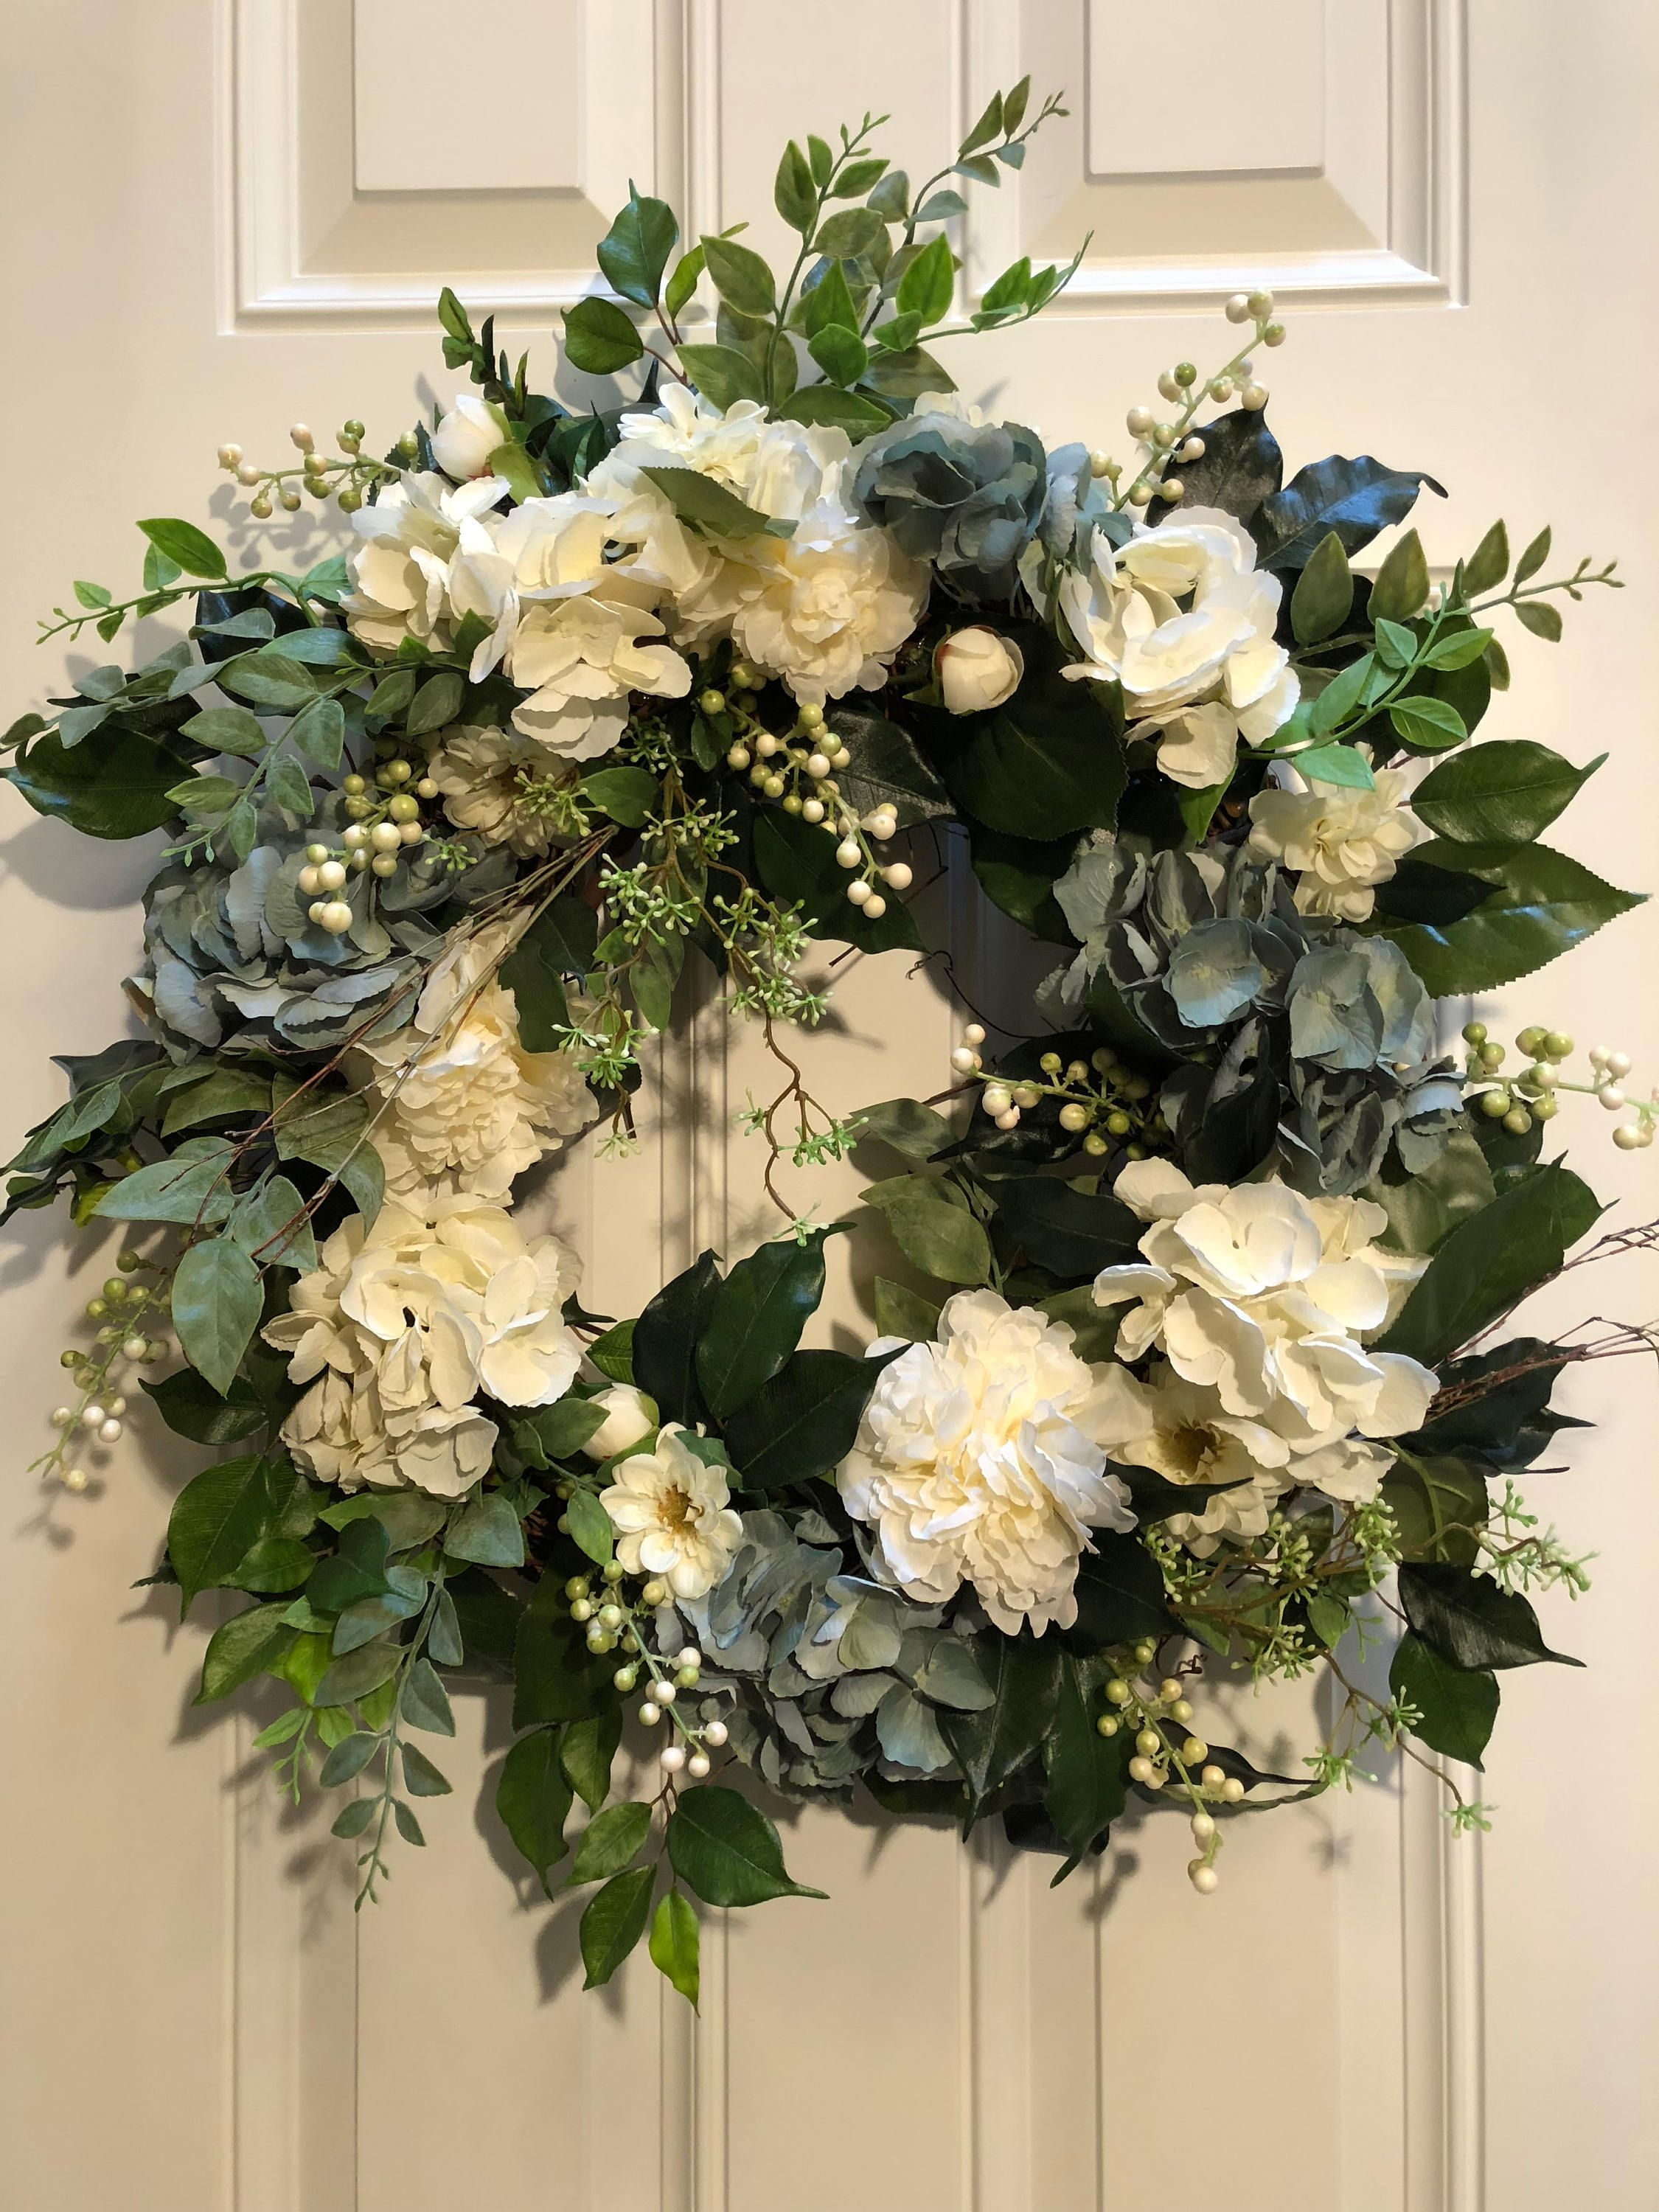 Front Door Wreath Spring Summer Artificial By Atriumdesigngroup On Etsy